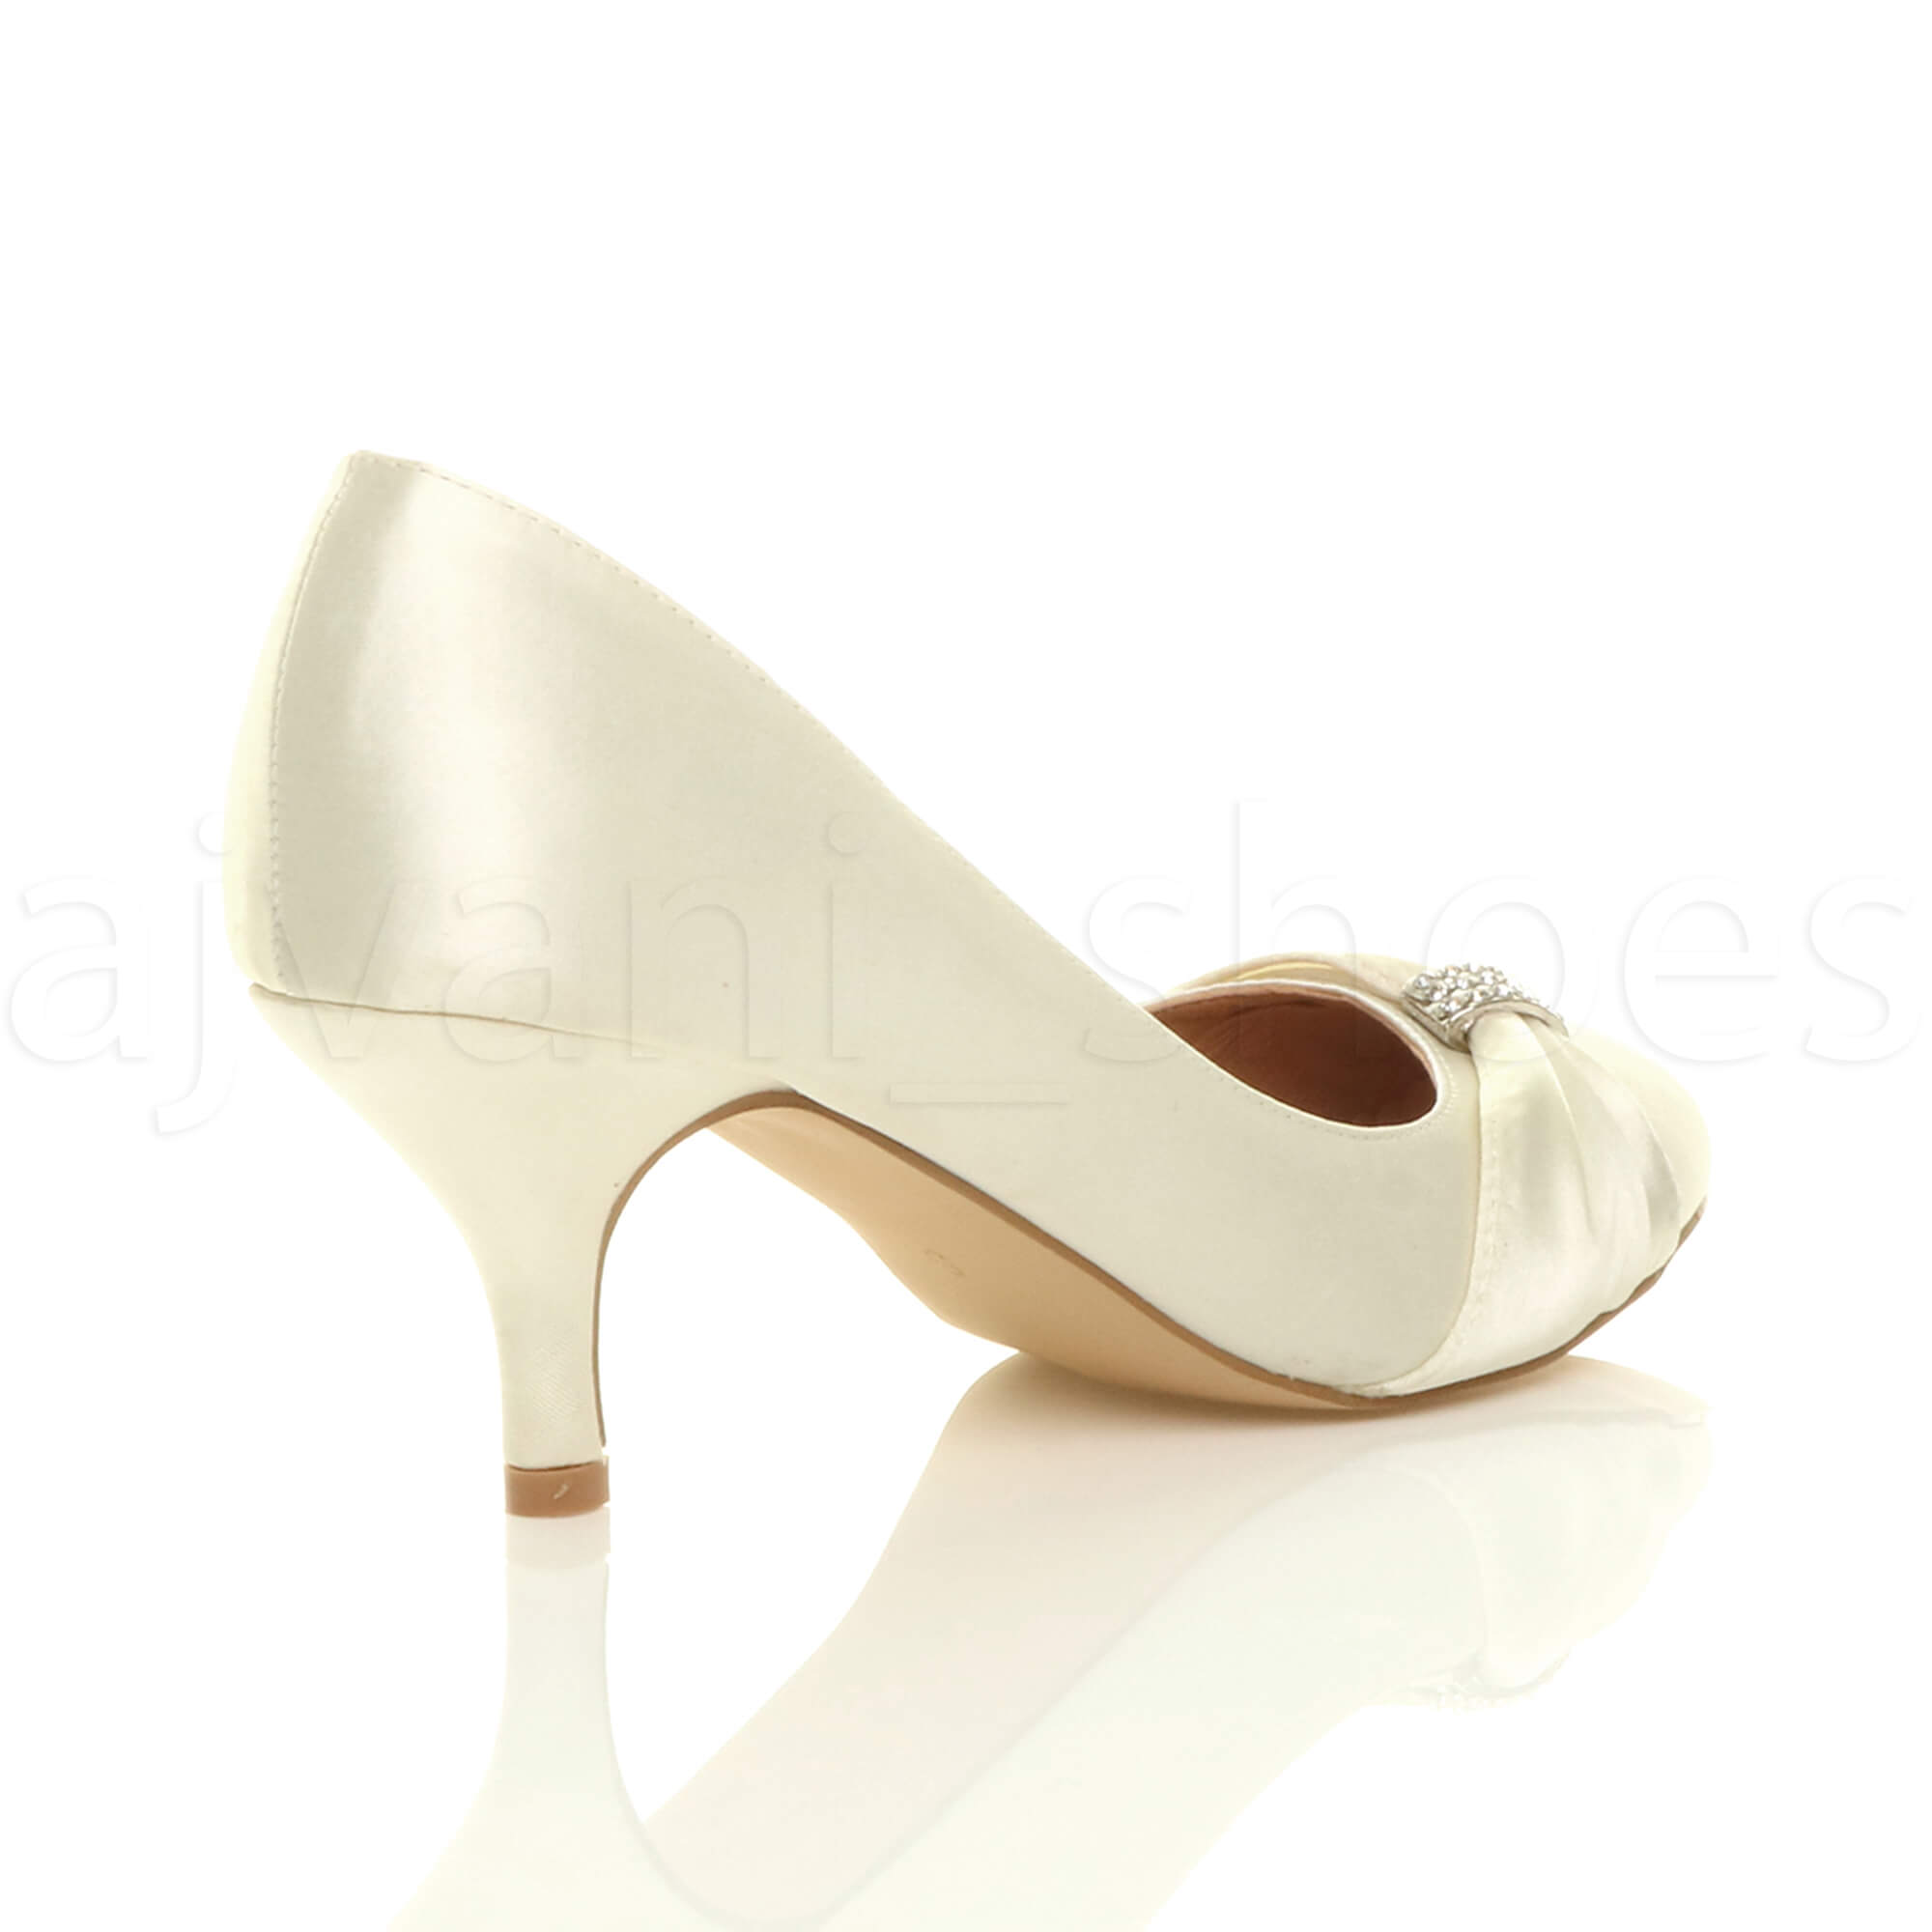 WOMENS-LADIES-MID-HEEL-RUCHED-DIAMANTE-WEDDING-PROM-EVENING-COURT-SHOES-SIZE thumbnail 37